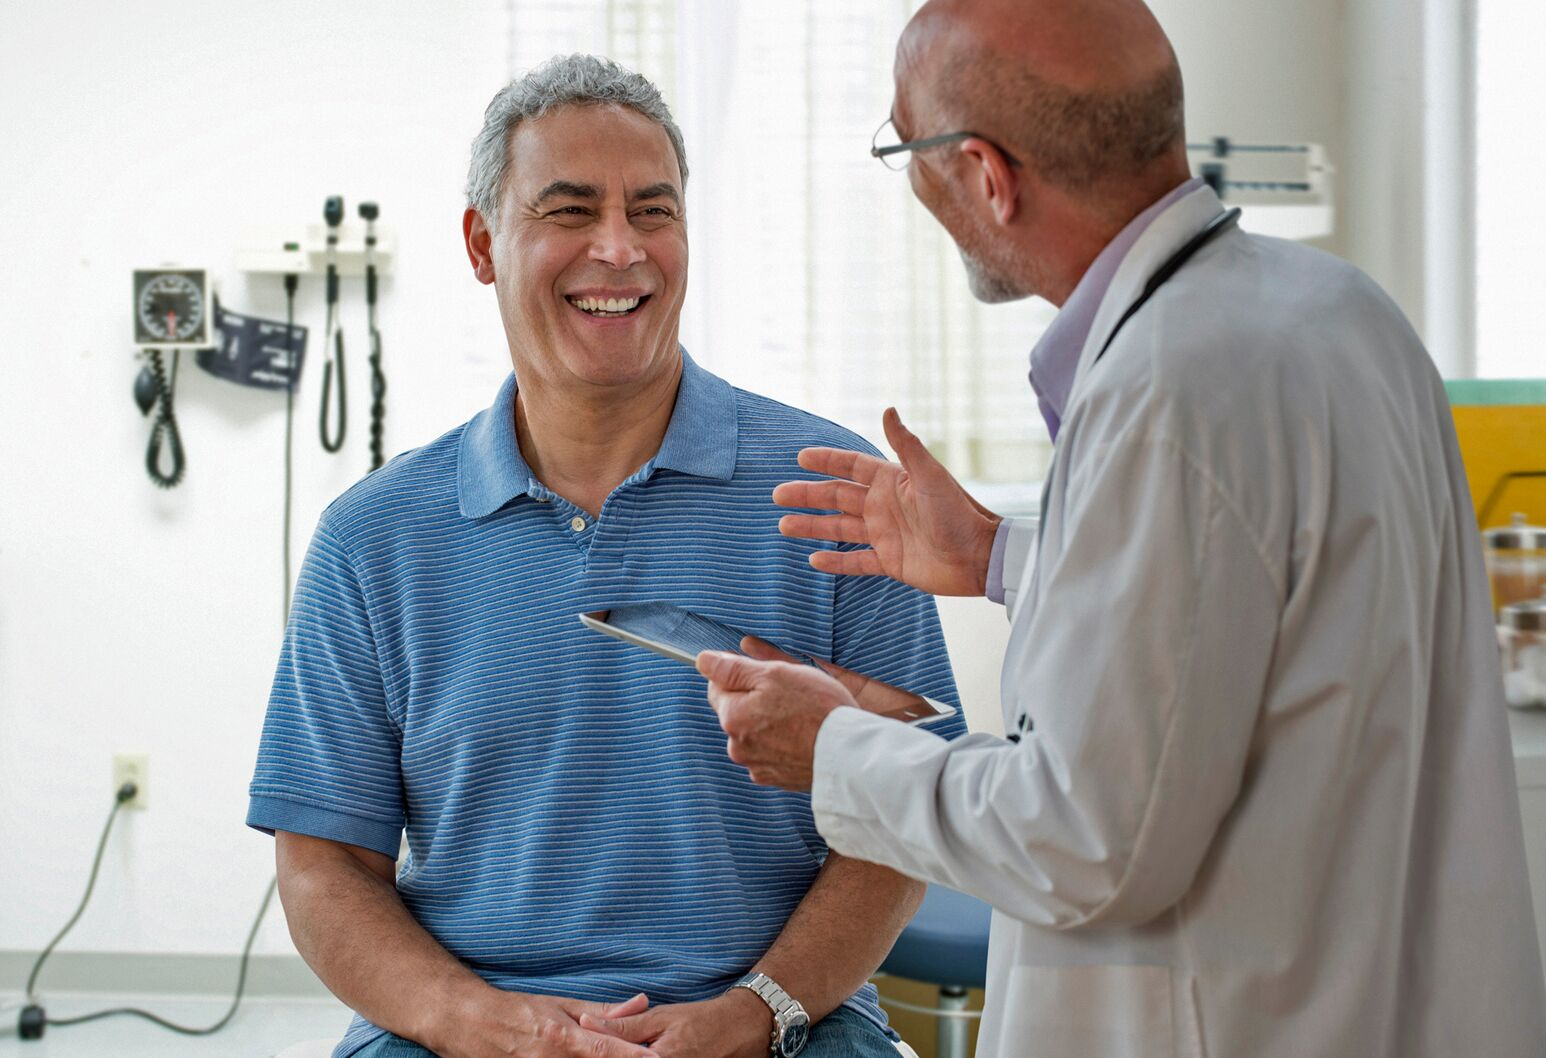 A doctor talks to an older man about active surveillance for his prostate cancer, which can be beneficial if you have low-risk disease.